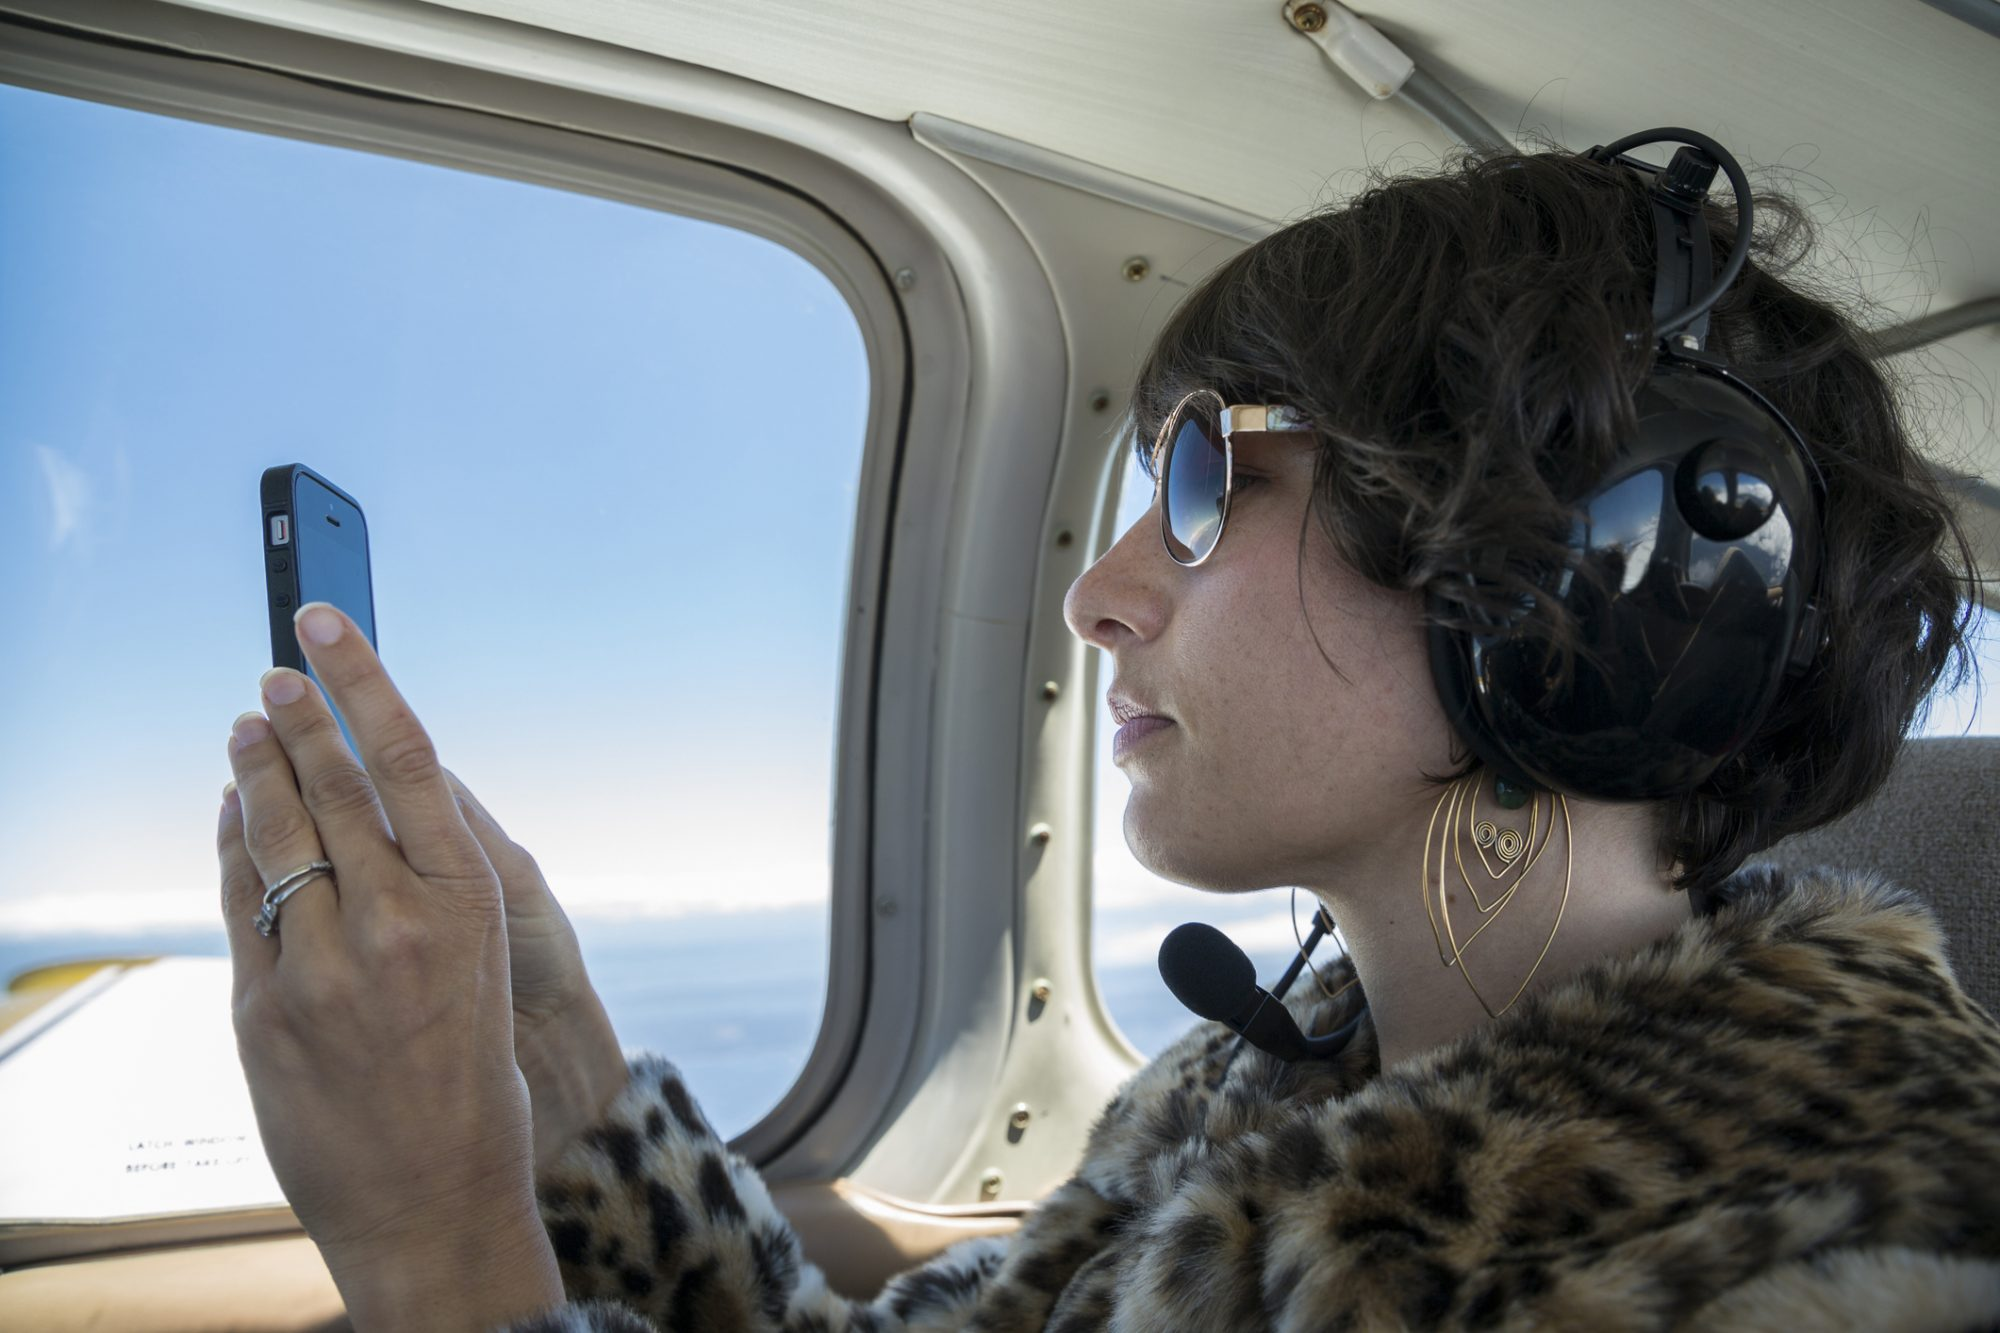 A woman takes a photo with her cell phone during a private flight on a small airplane.